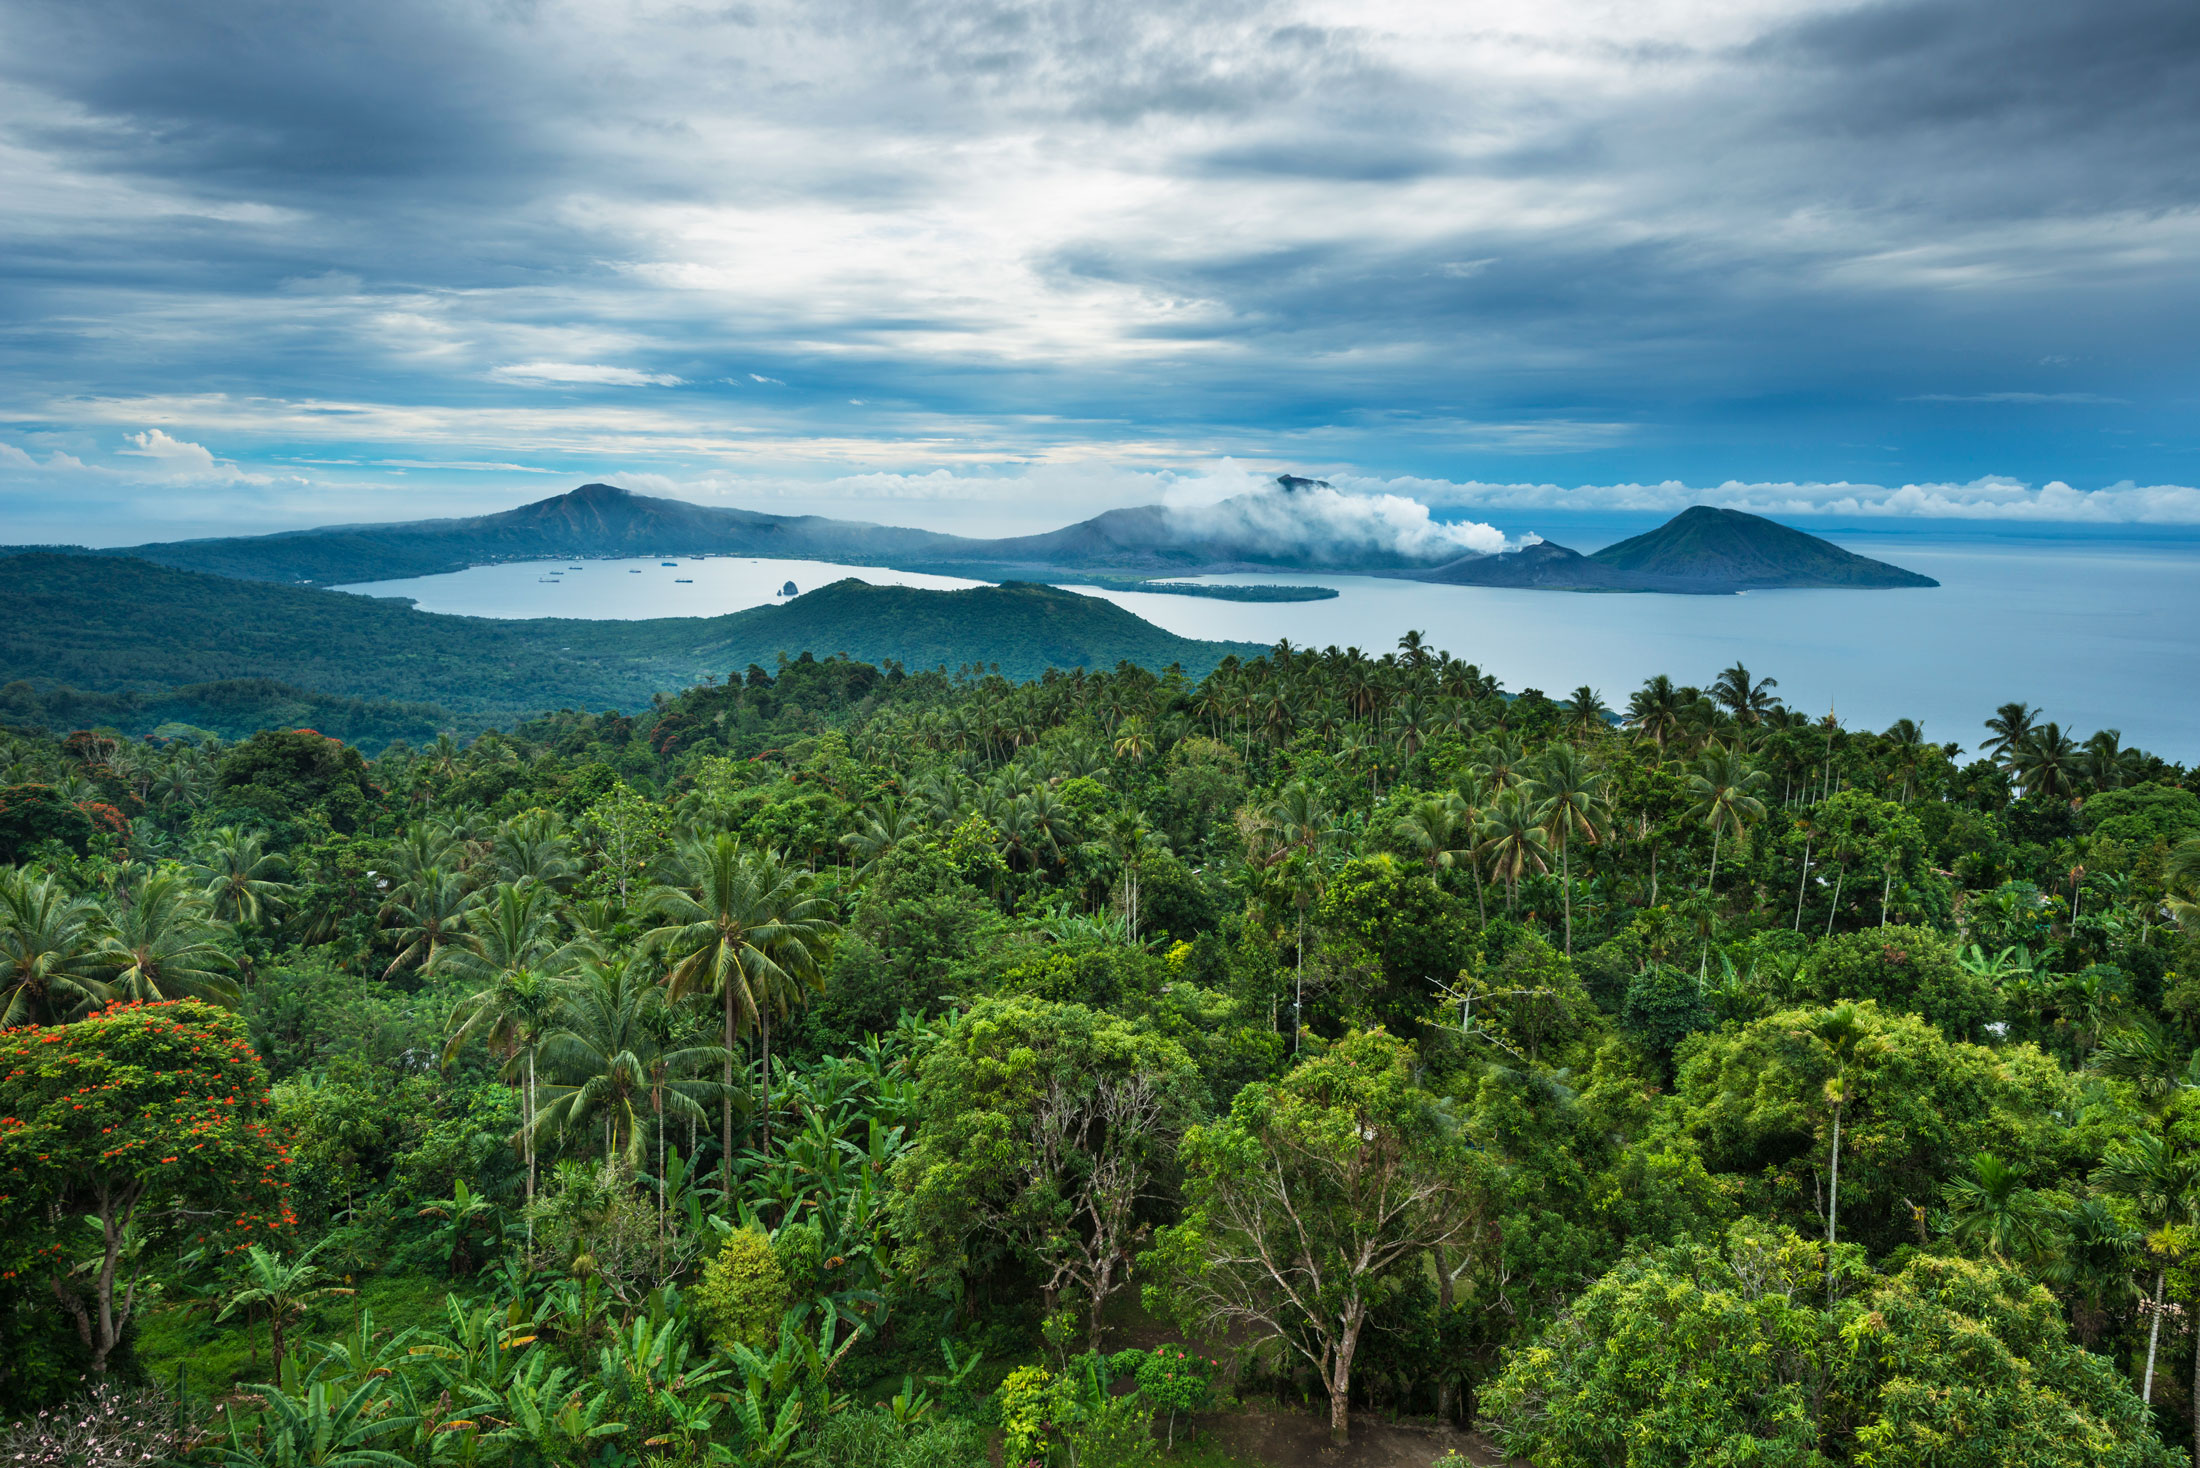 A Trek Through Untouched Rivers and Mountains in Papua New Guinea